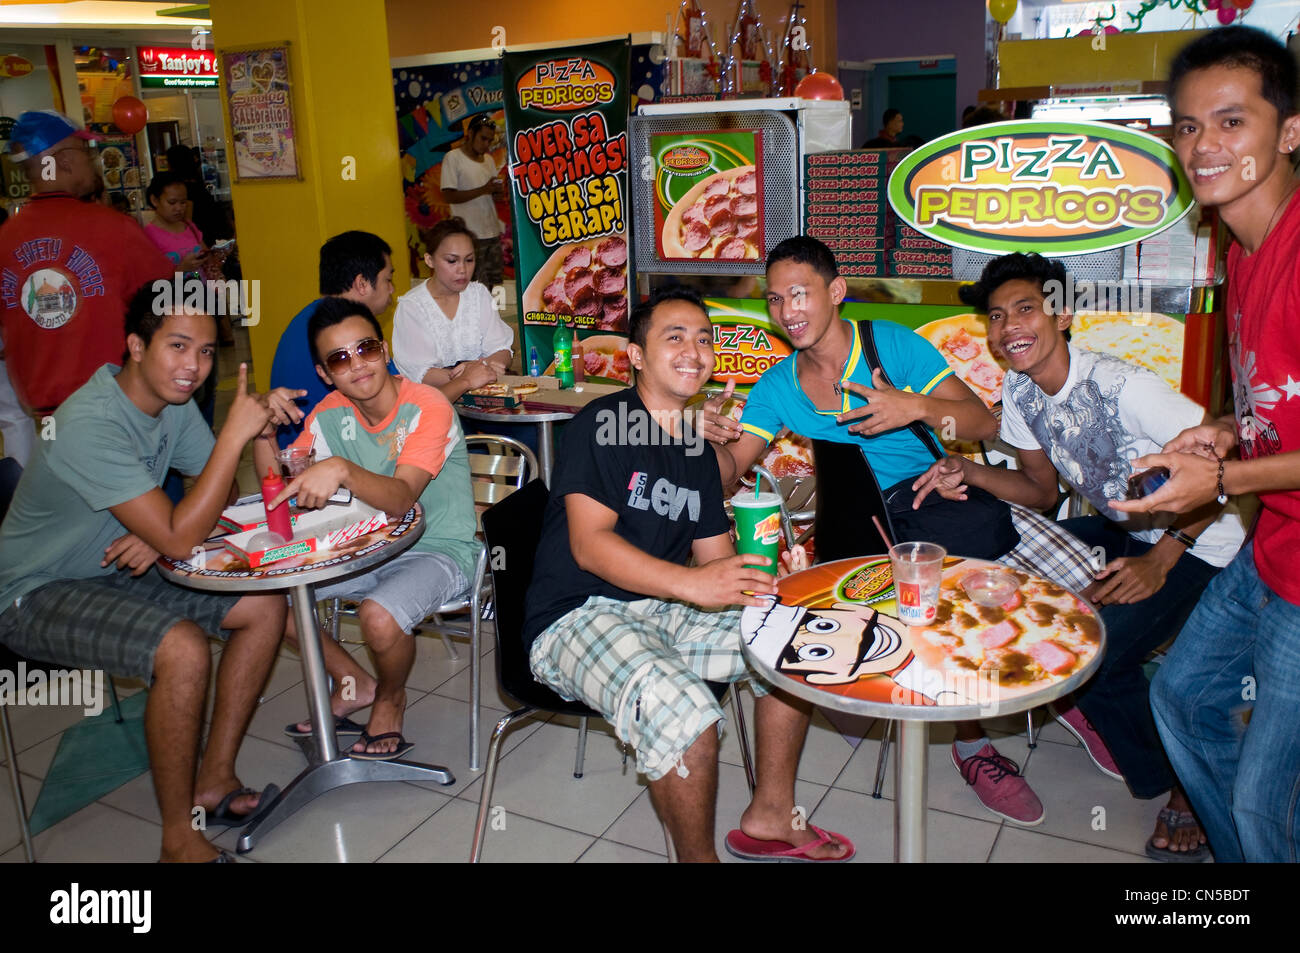 Young People Dining In Elizabeth Mall Cebu City Philippines Stock Photo Royalty Free Image